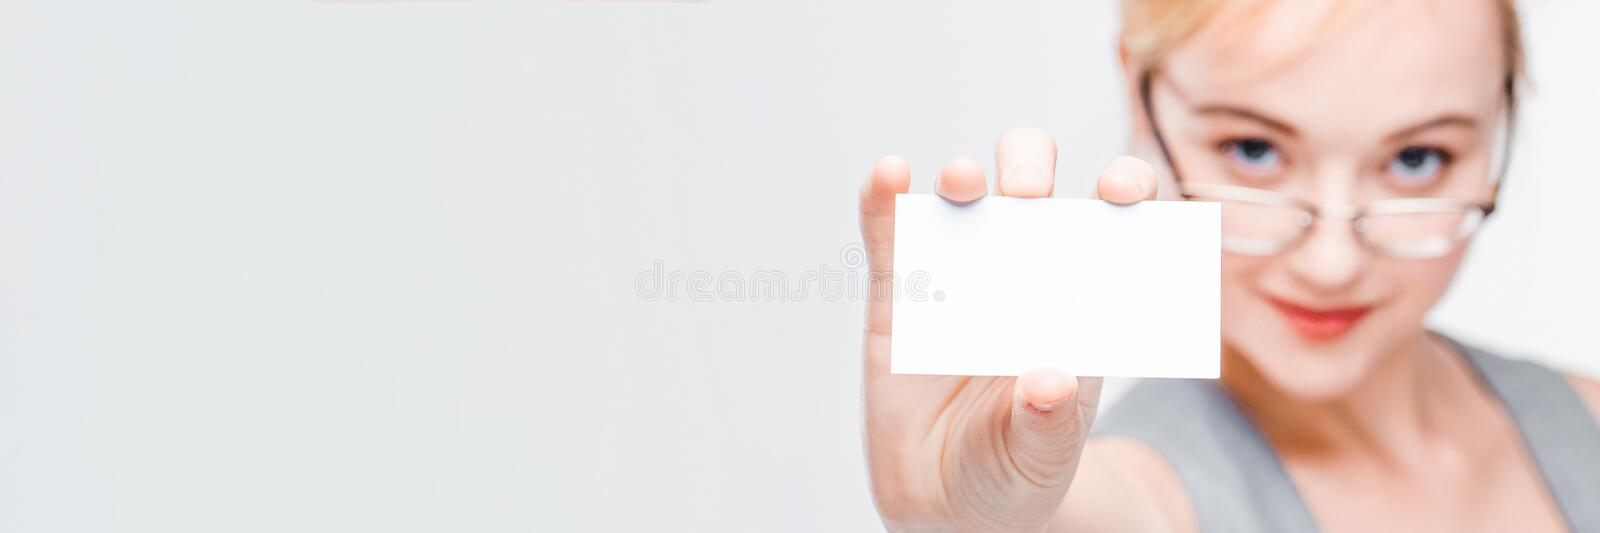 Executive coaching professional consulting woman royalty free stock image